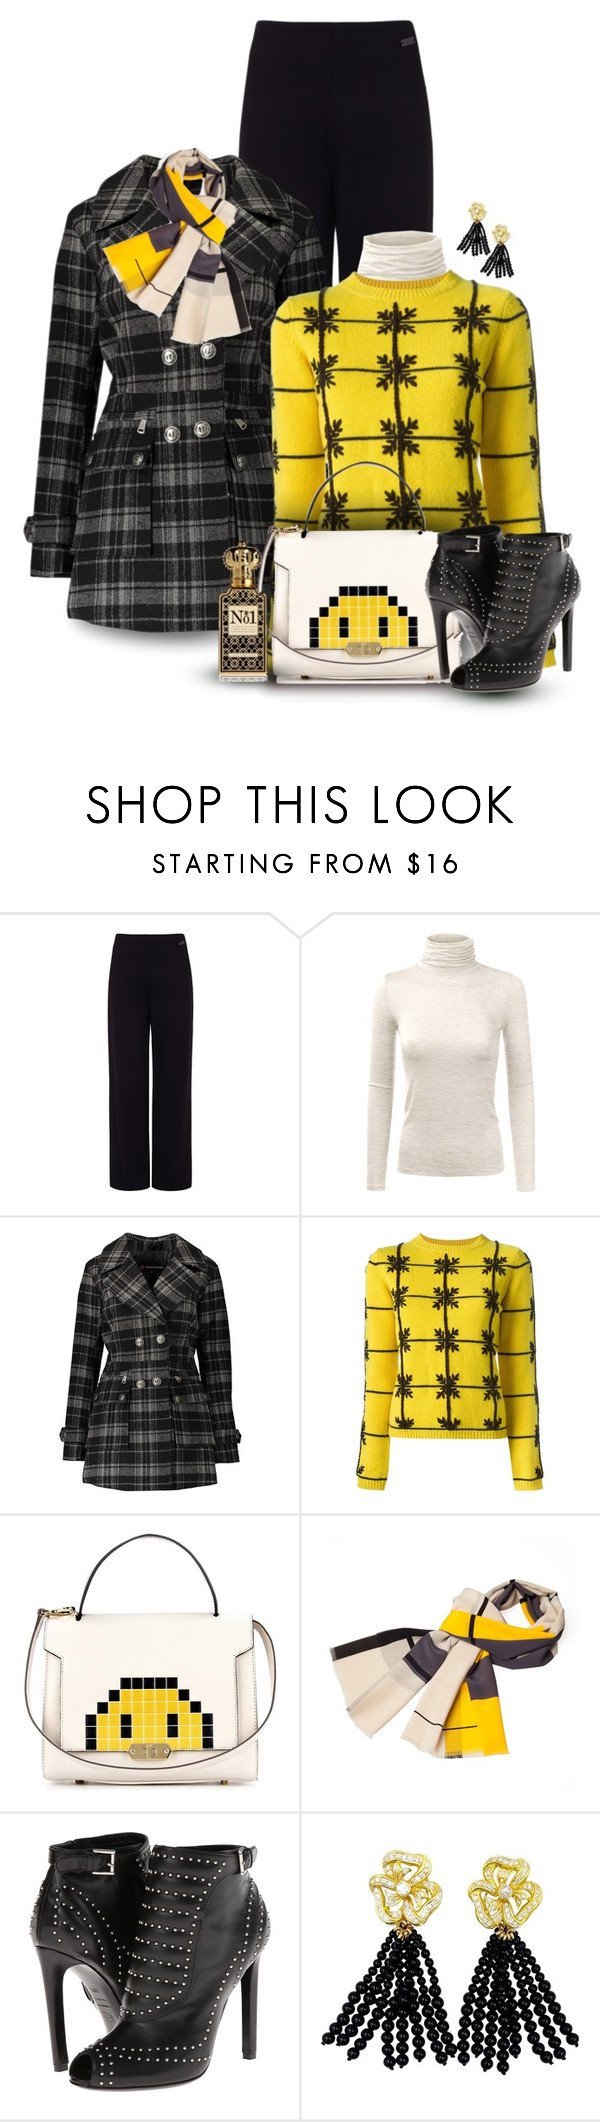 """""""Anya Hindmarch Pixel Smiley Bag"""" by franceseattle ❤ liked on Polyvore featuring Pink Tartan, Doublju, Urban Republic, P.A.R.O.S.H., Anya Hindmarch, Infinity, Alexander McQueen and Clive Christian"""